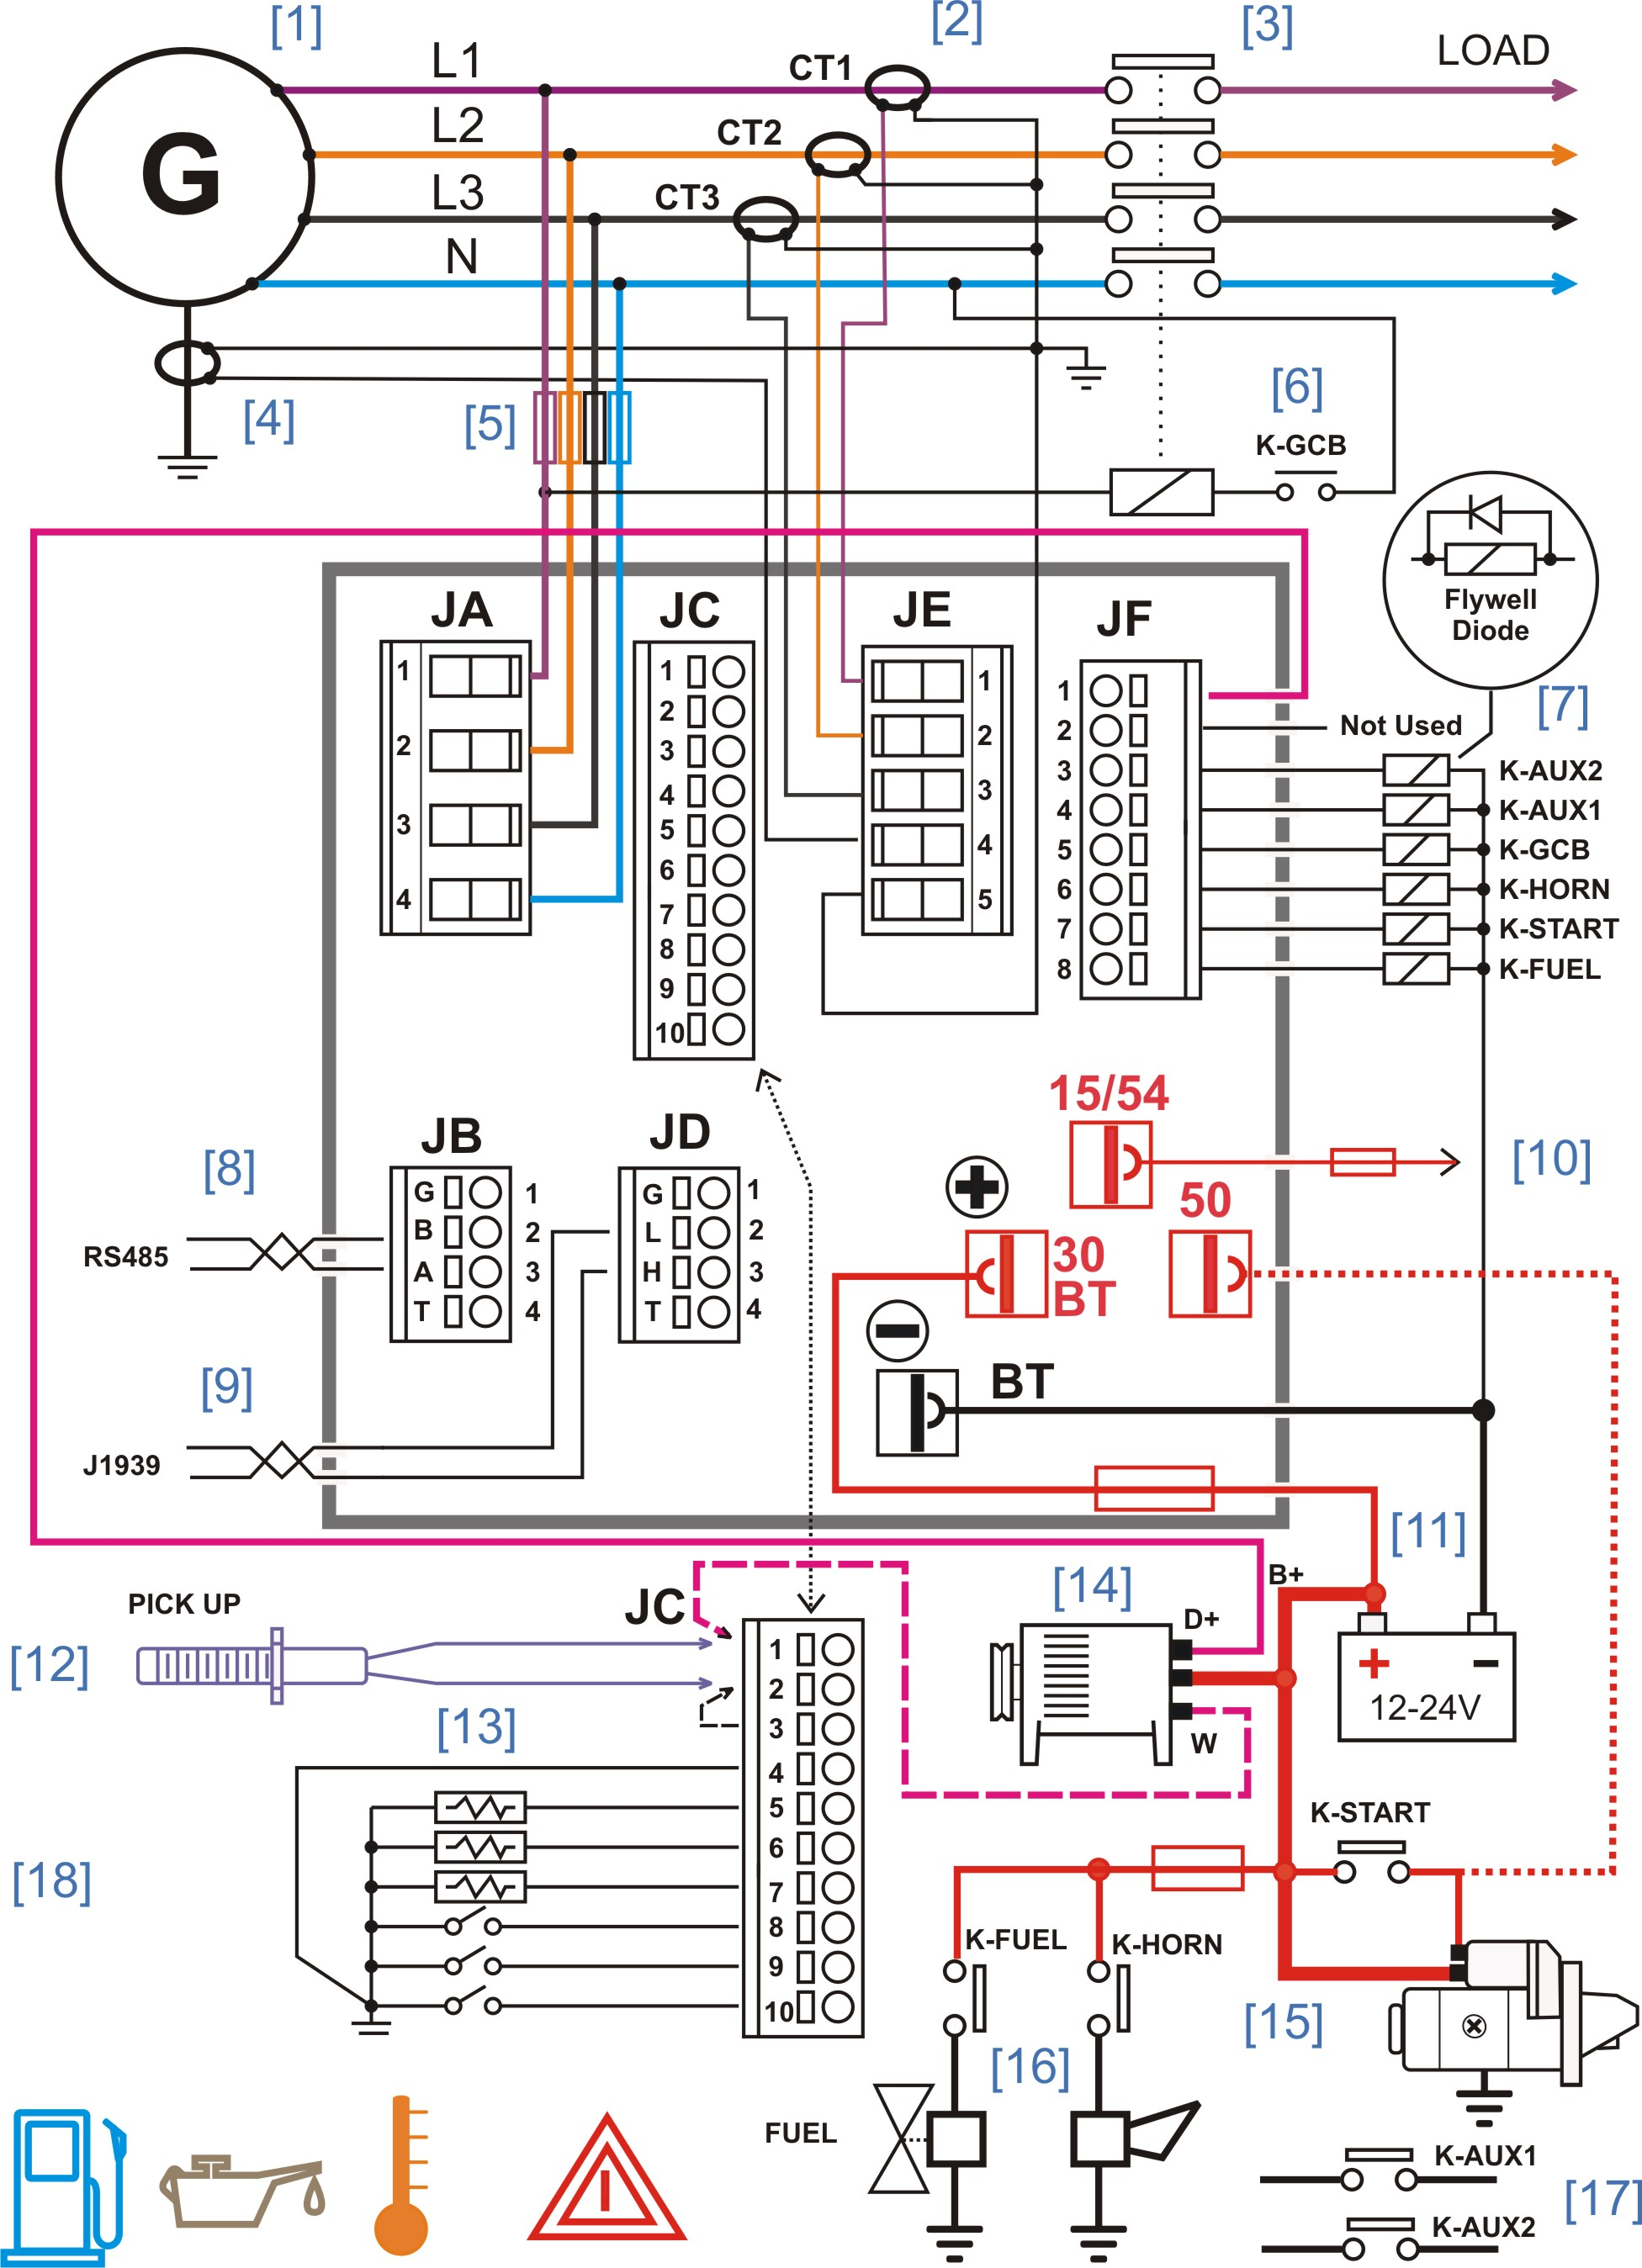 nortel mics wiring diagram bmw k 50 wiring diagram bmw image wiring diagram fire pump controller wiring diagram network switch